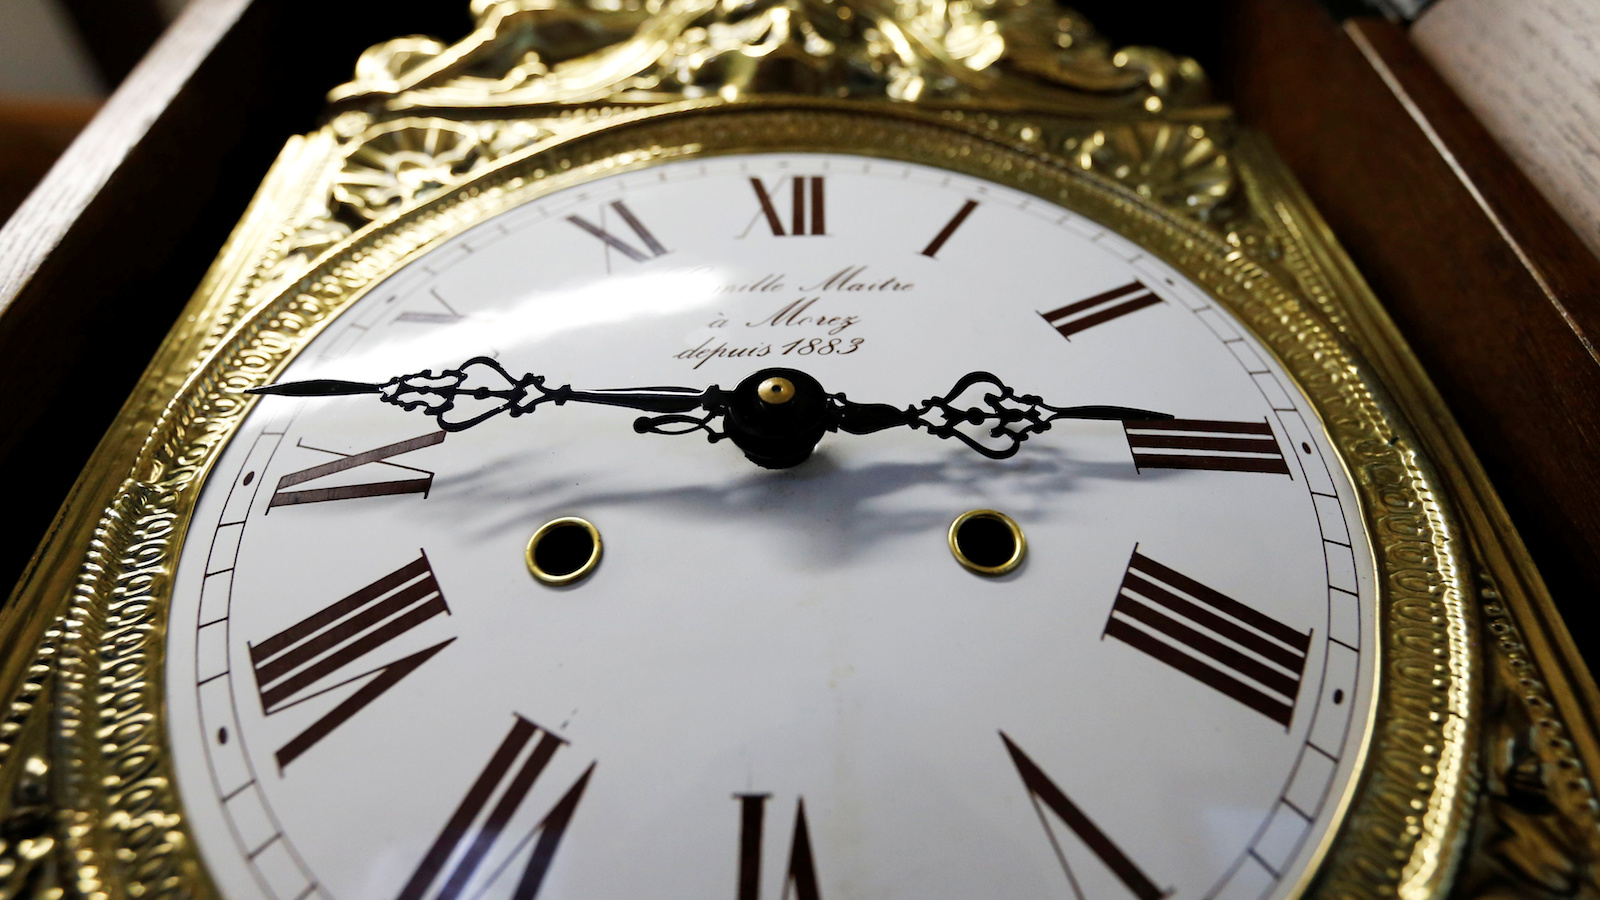 The hands of a clock are pictured on a wall clock in a watchmaker's shop in Bordeaux